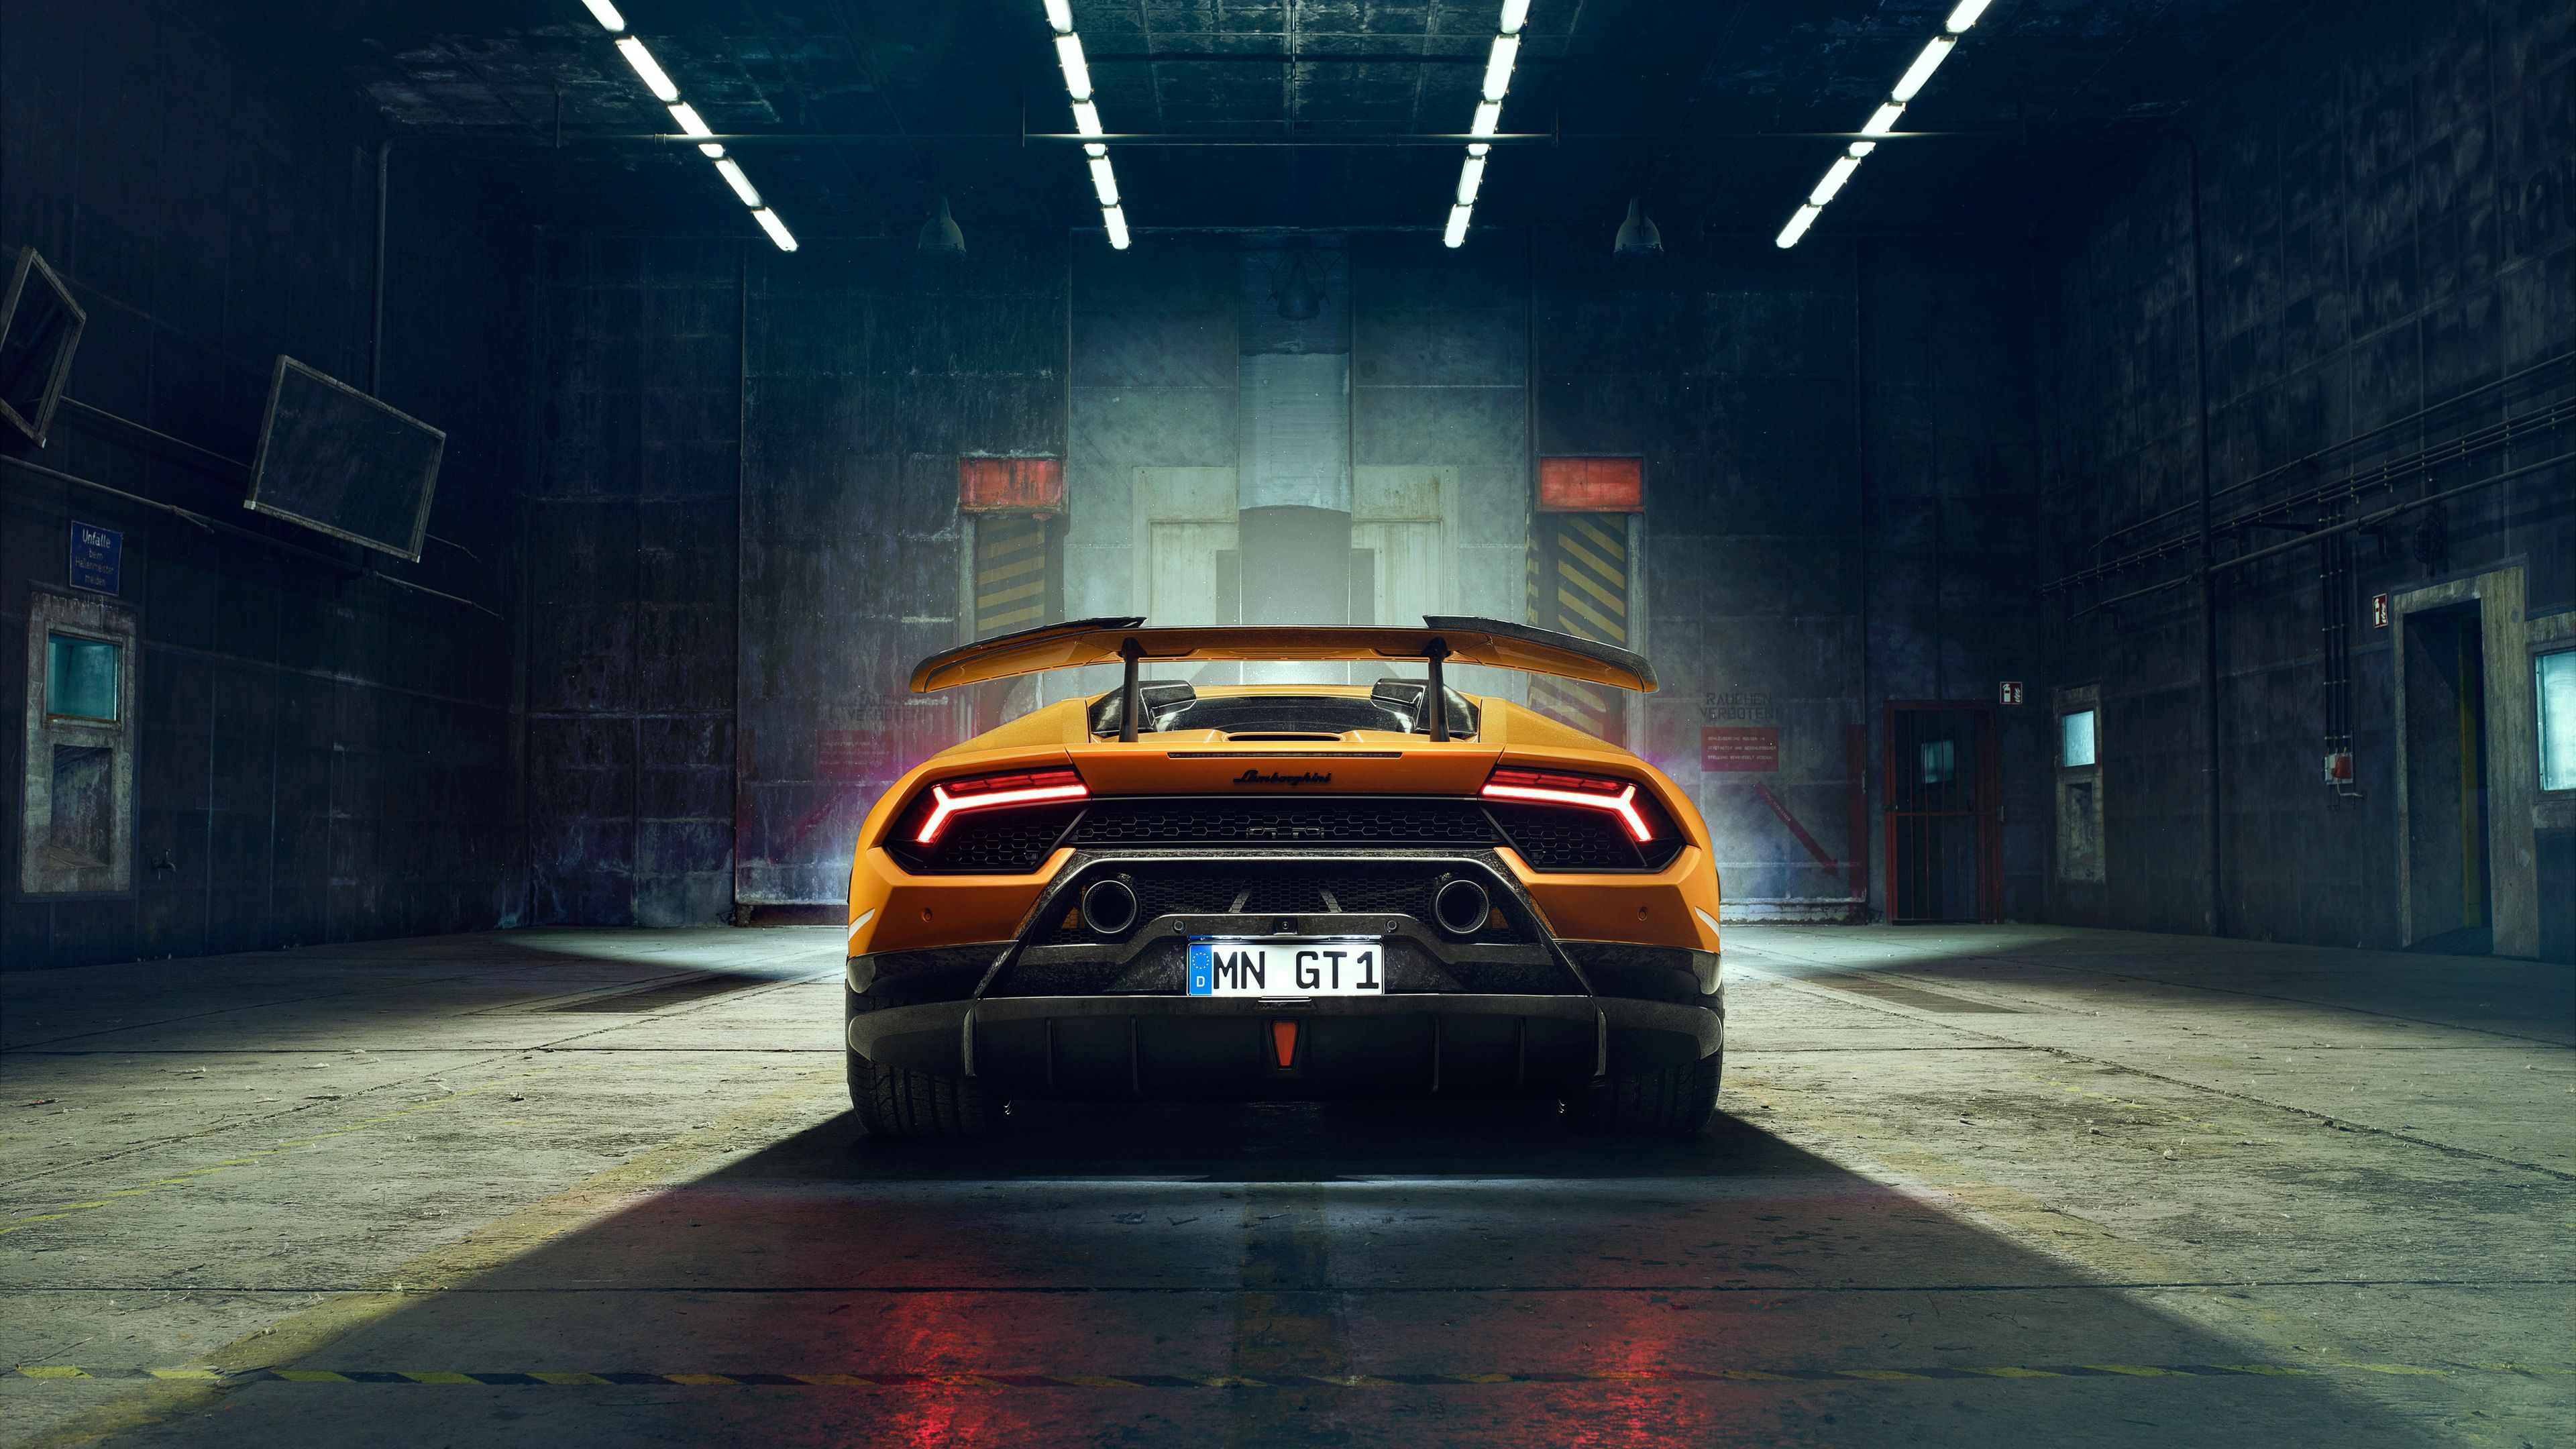 Wallpaper 4k Novitec Lamborghi Huracan Perfomante 2018 Rear Lights